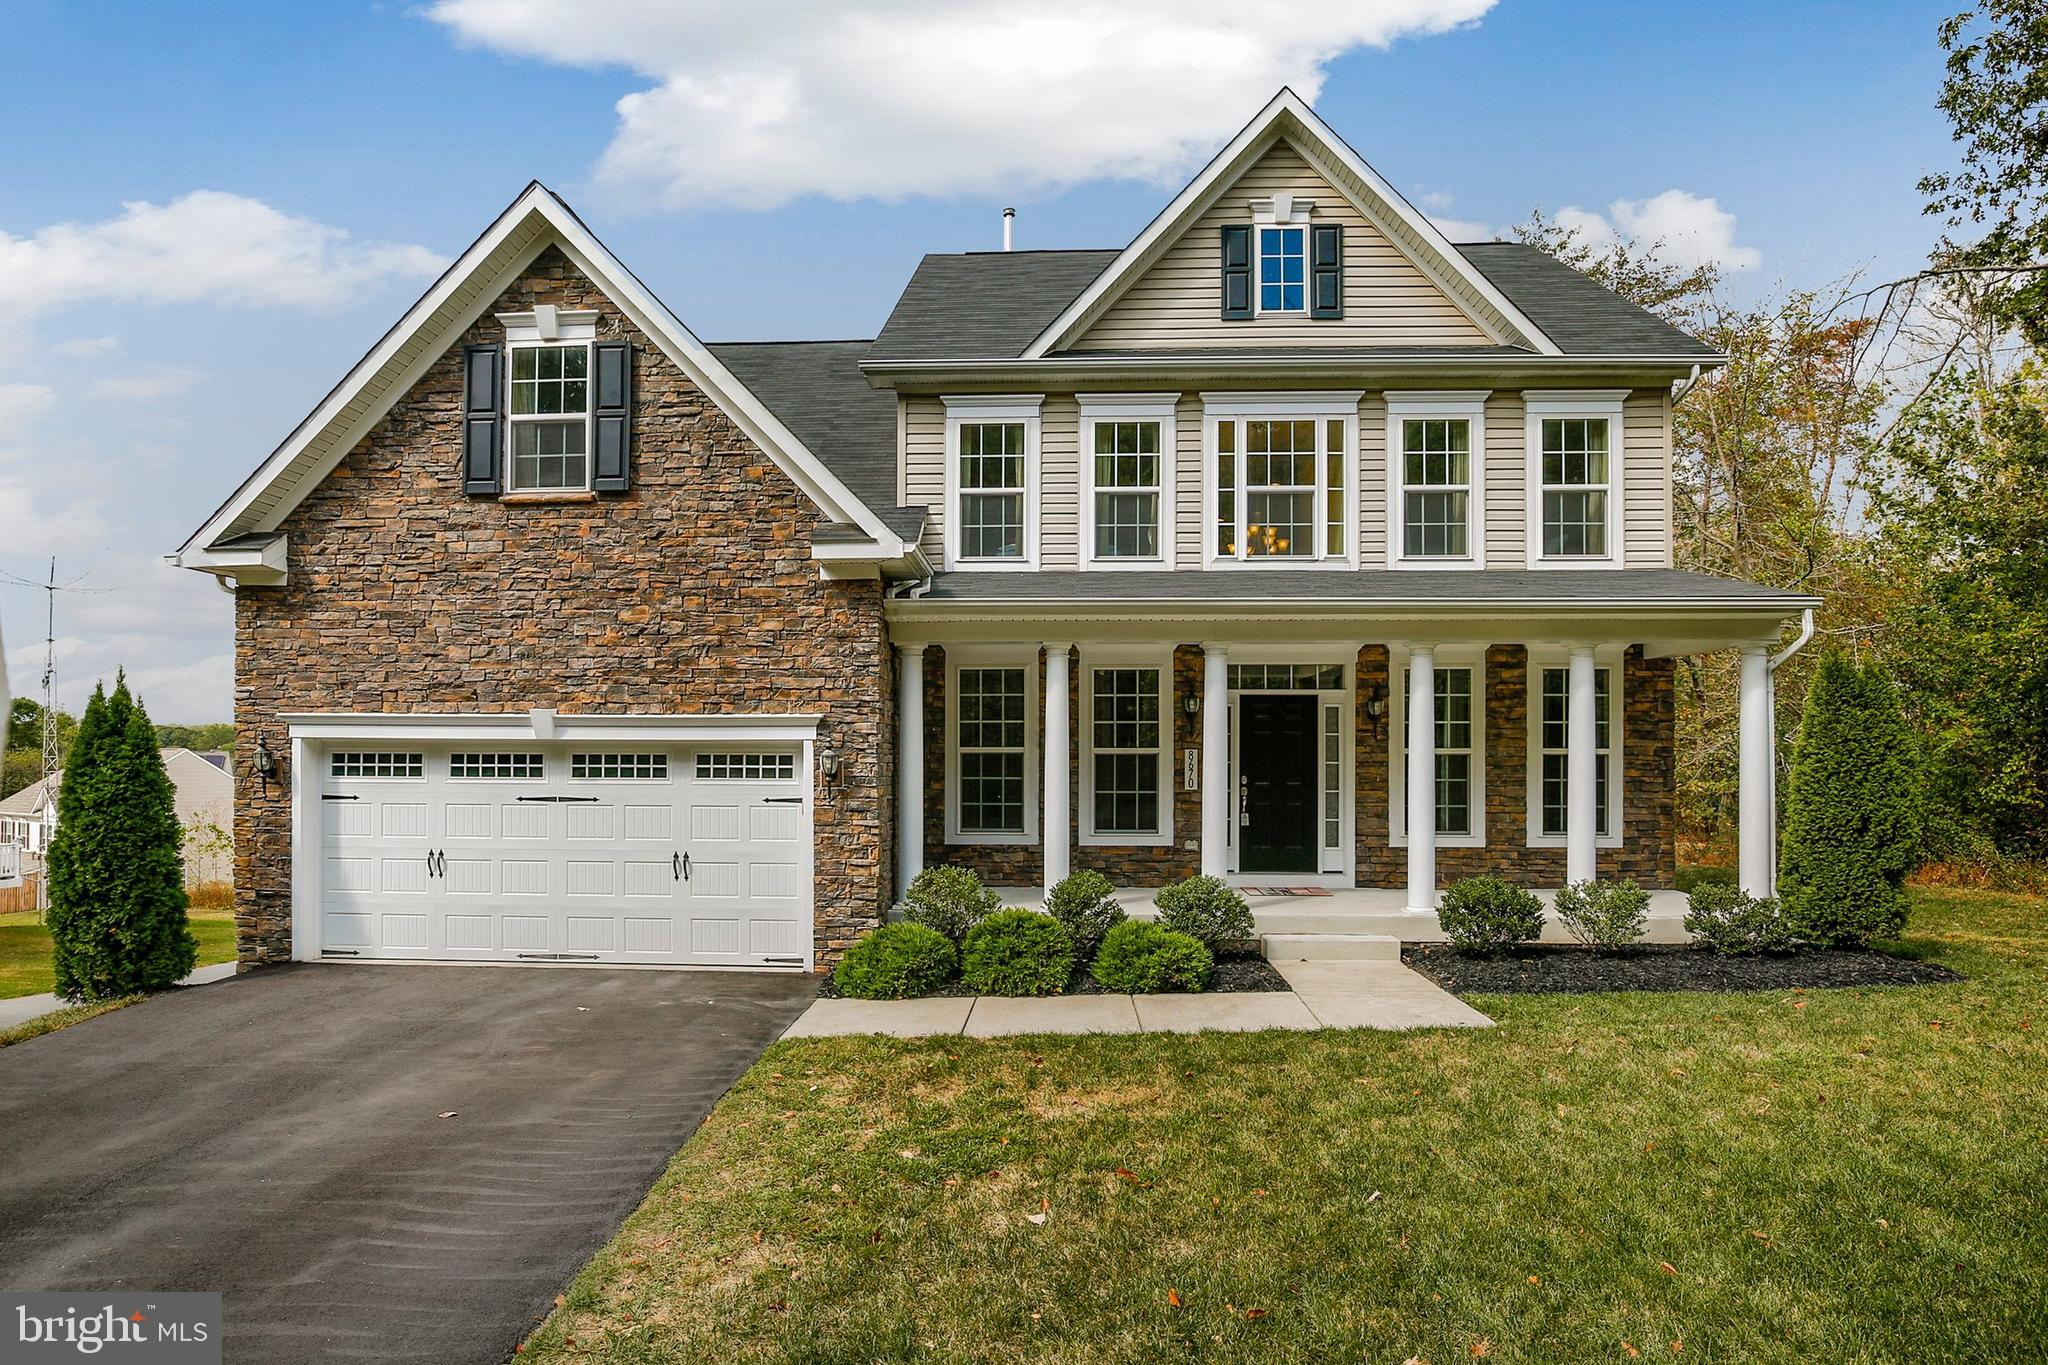 8670 PINE ROAD, JESSUP, MD 20794